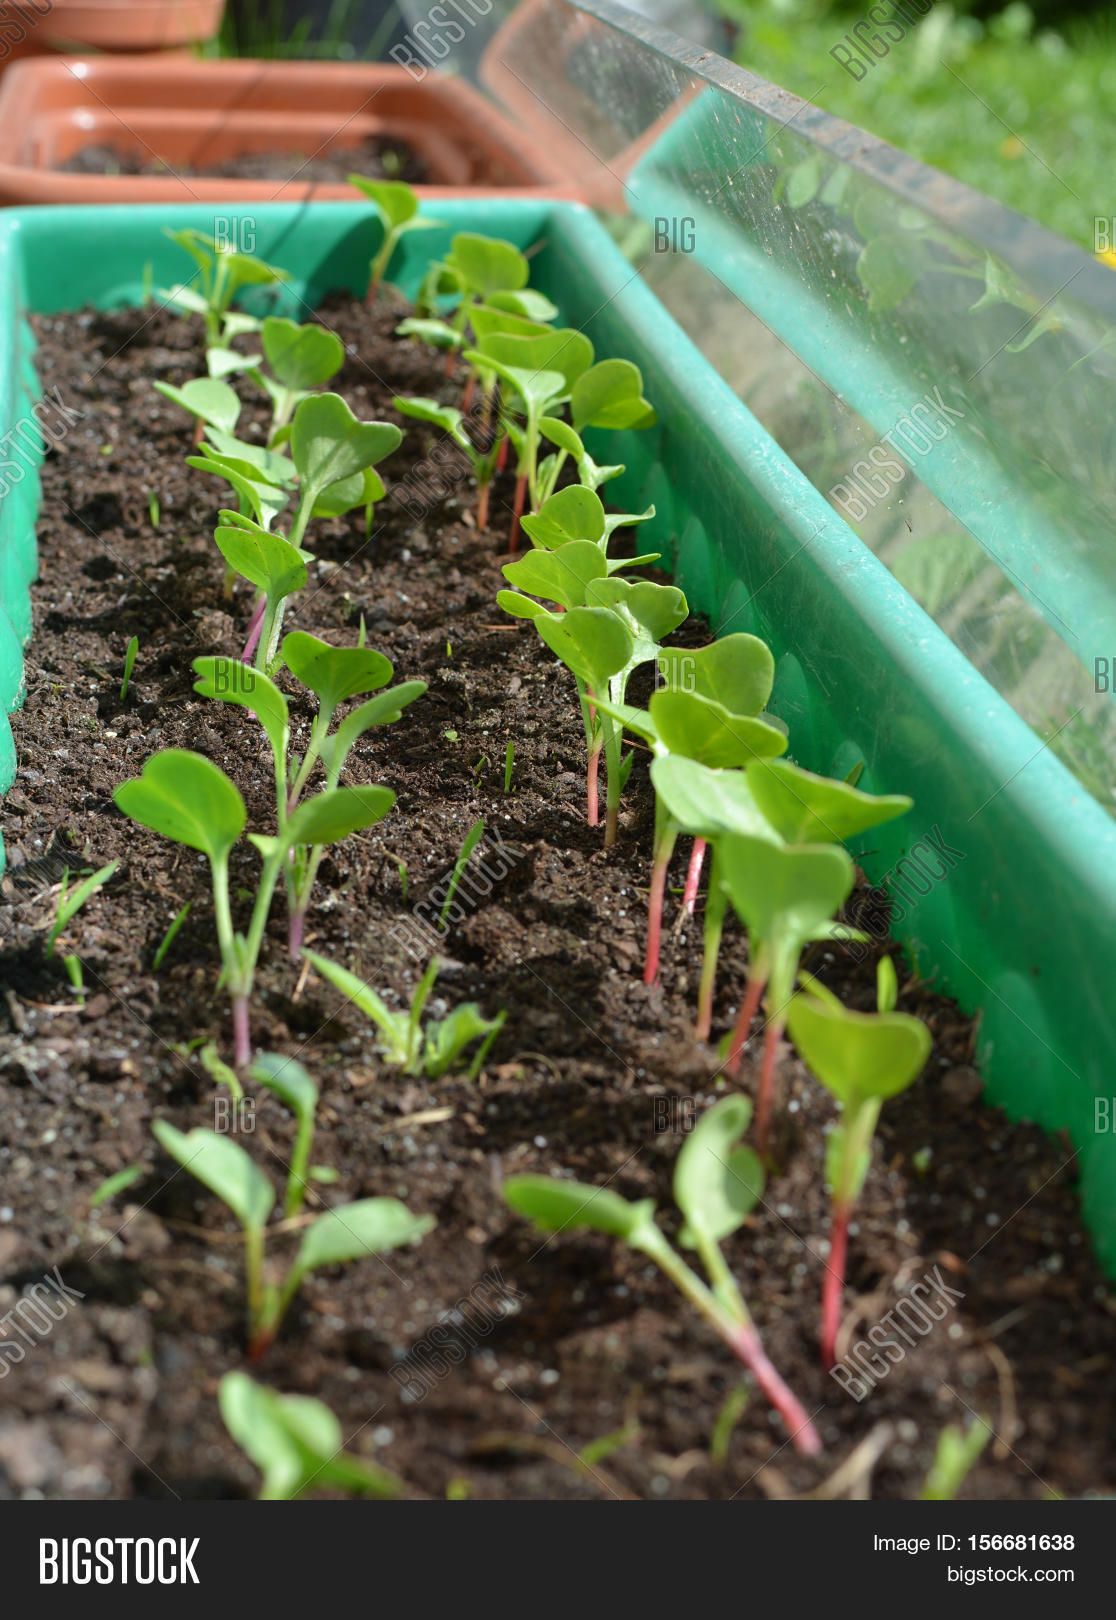 how to grow radish in pots in india